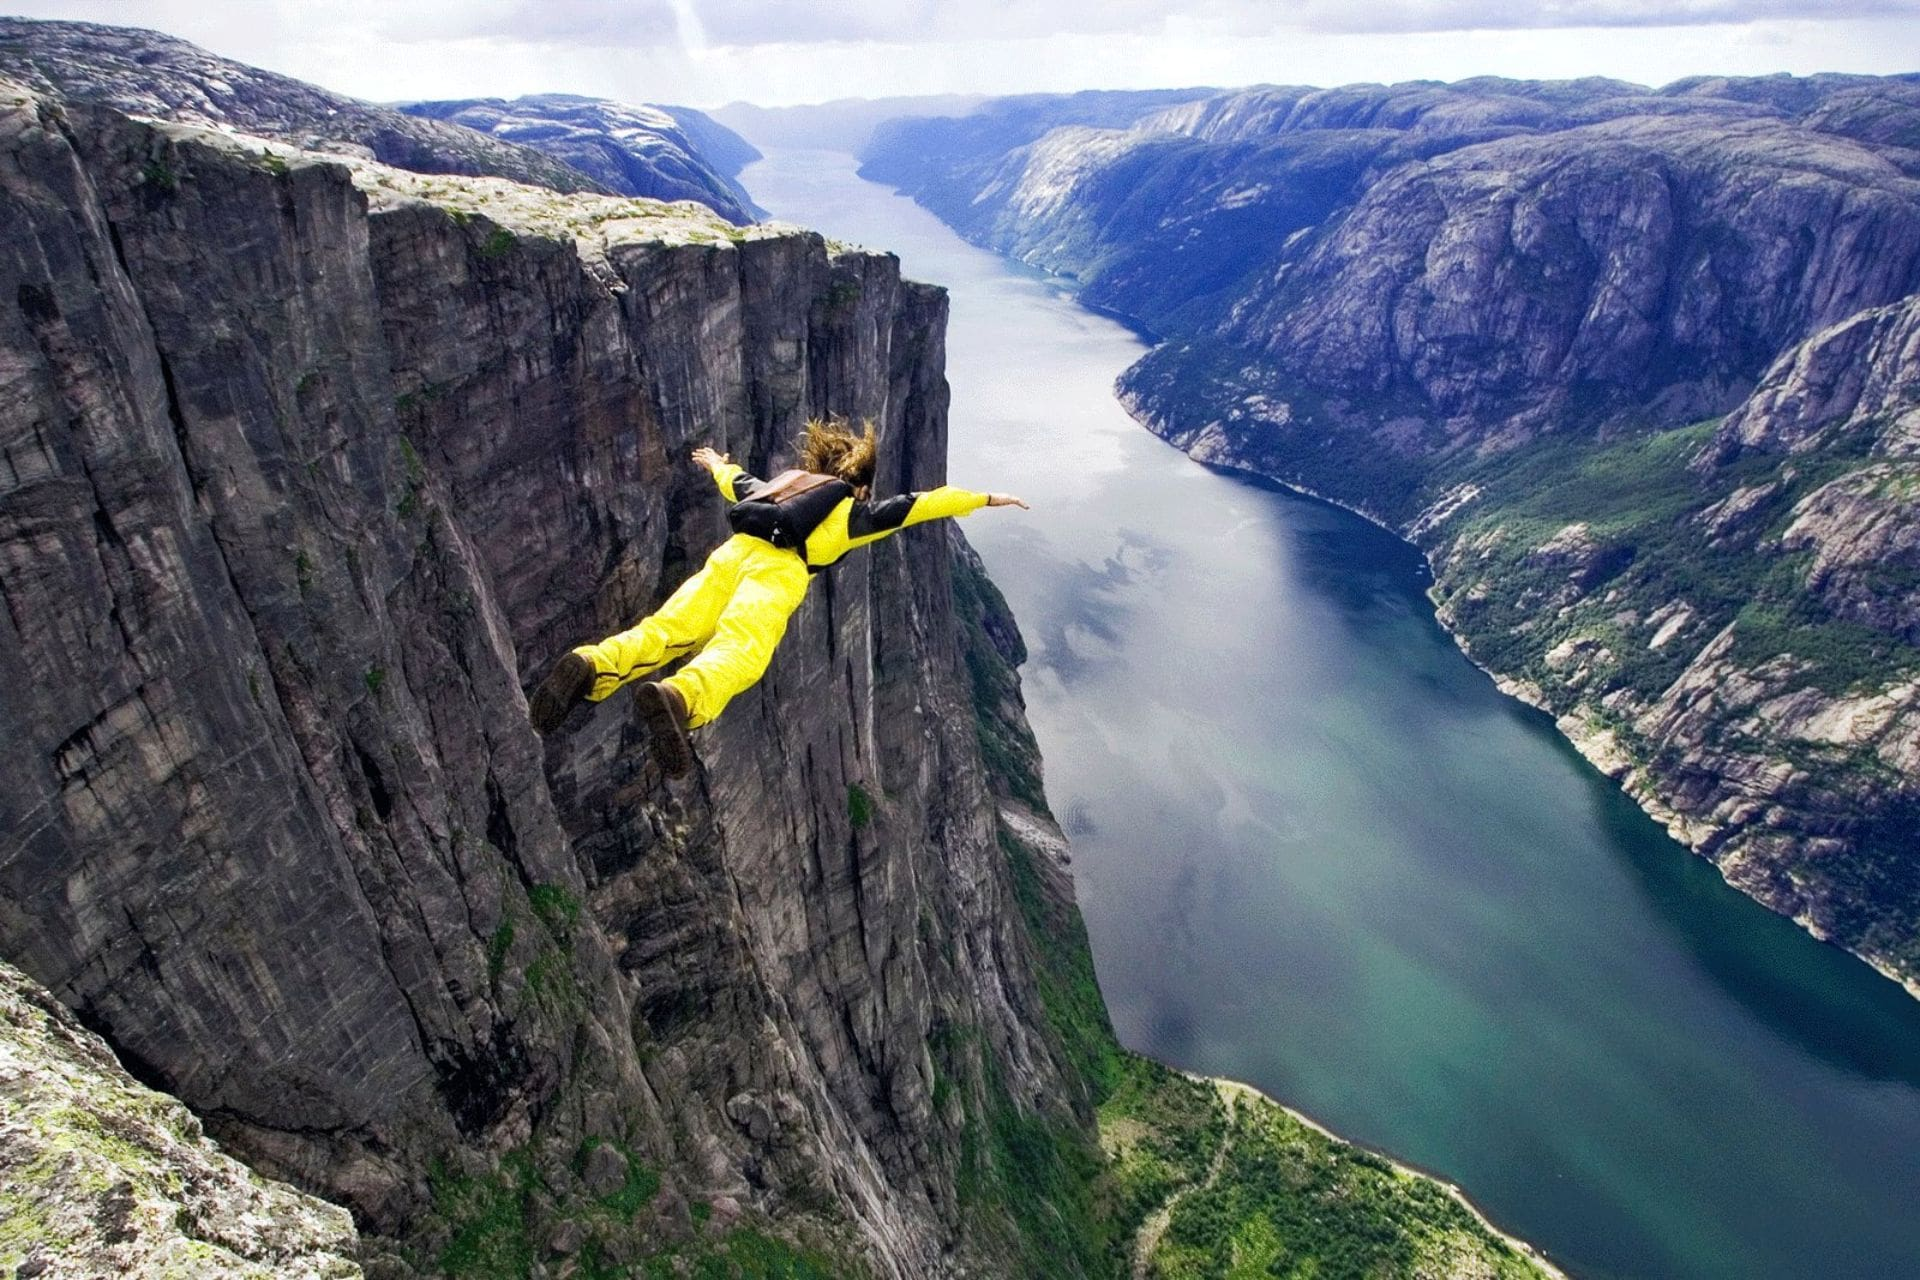 woman-base-jumping-off-cliffs-in-norway-adrenaline-junkie-bucket-list